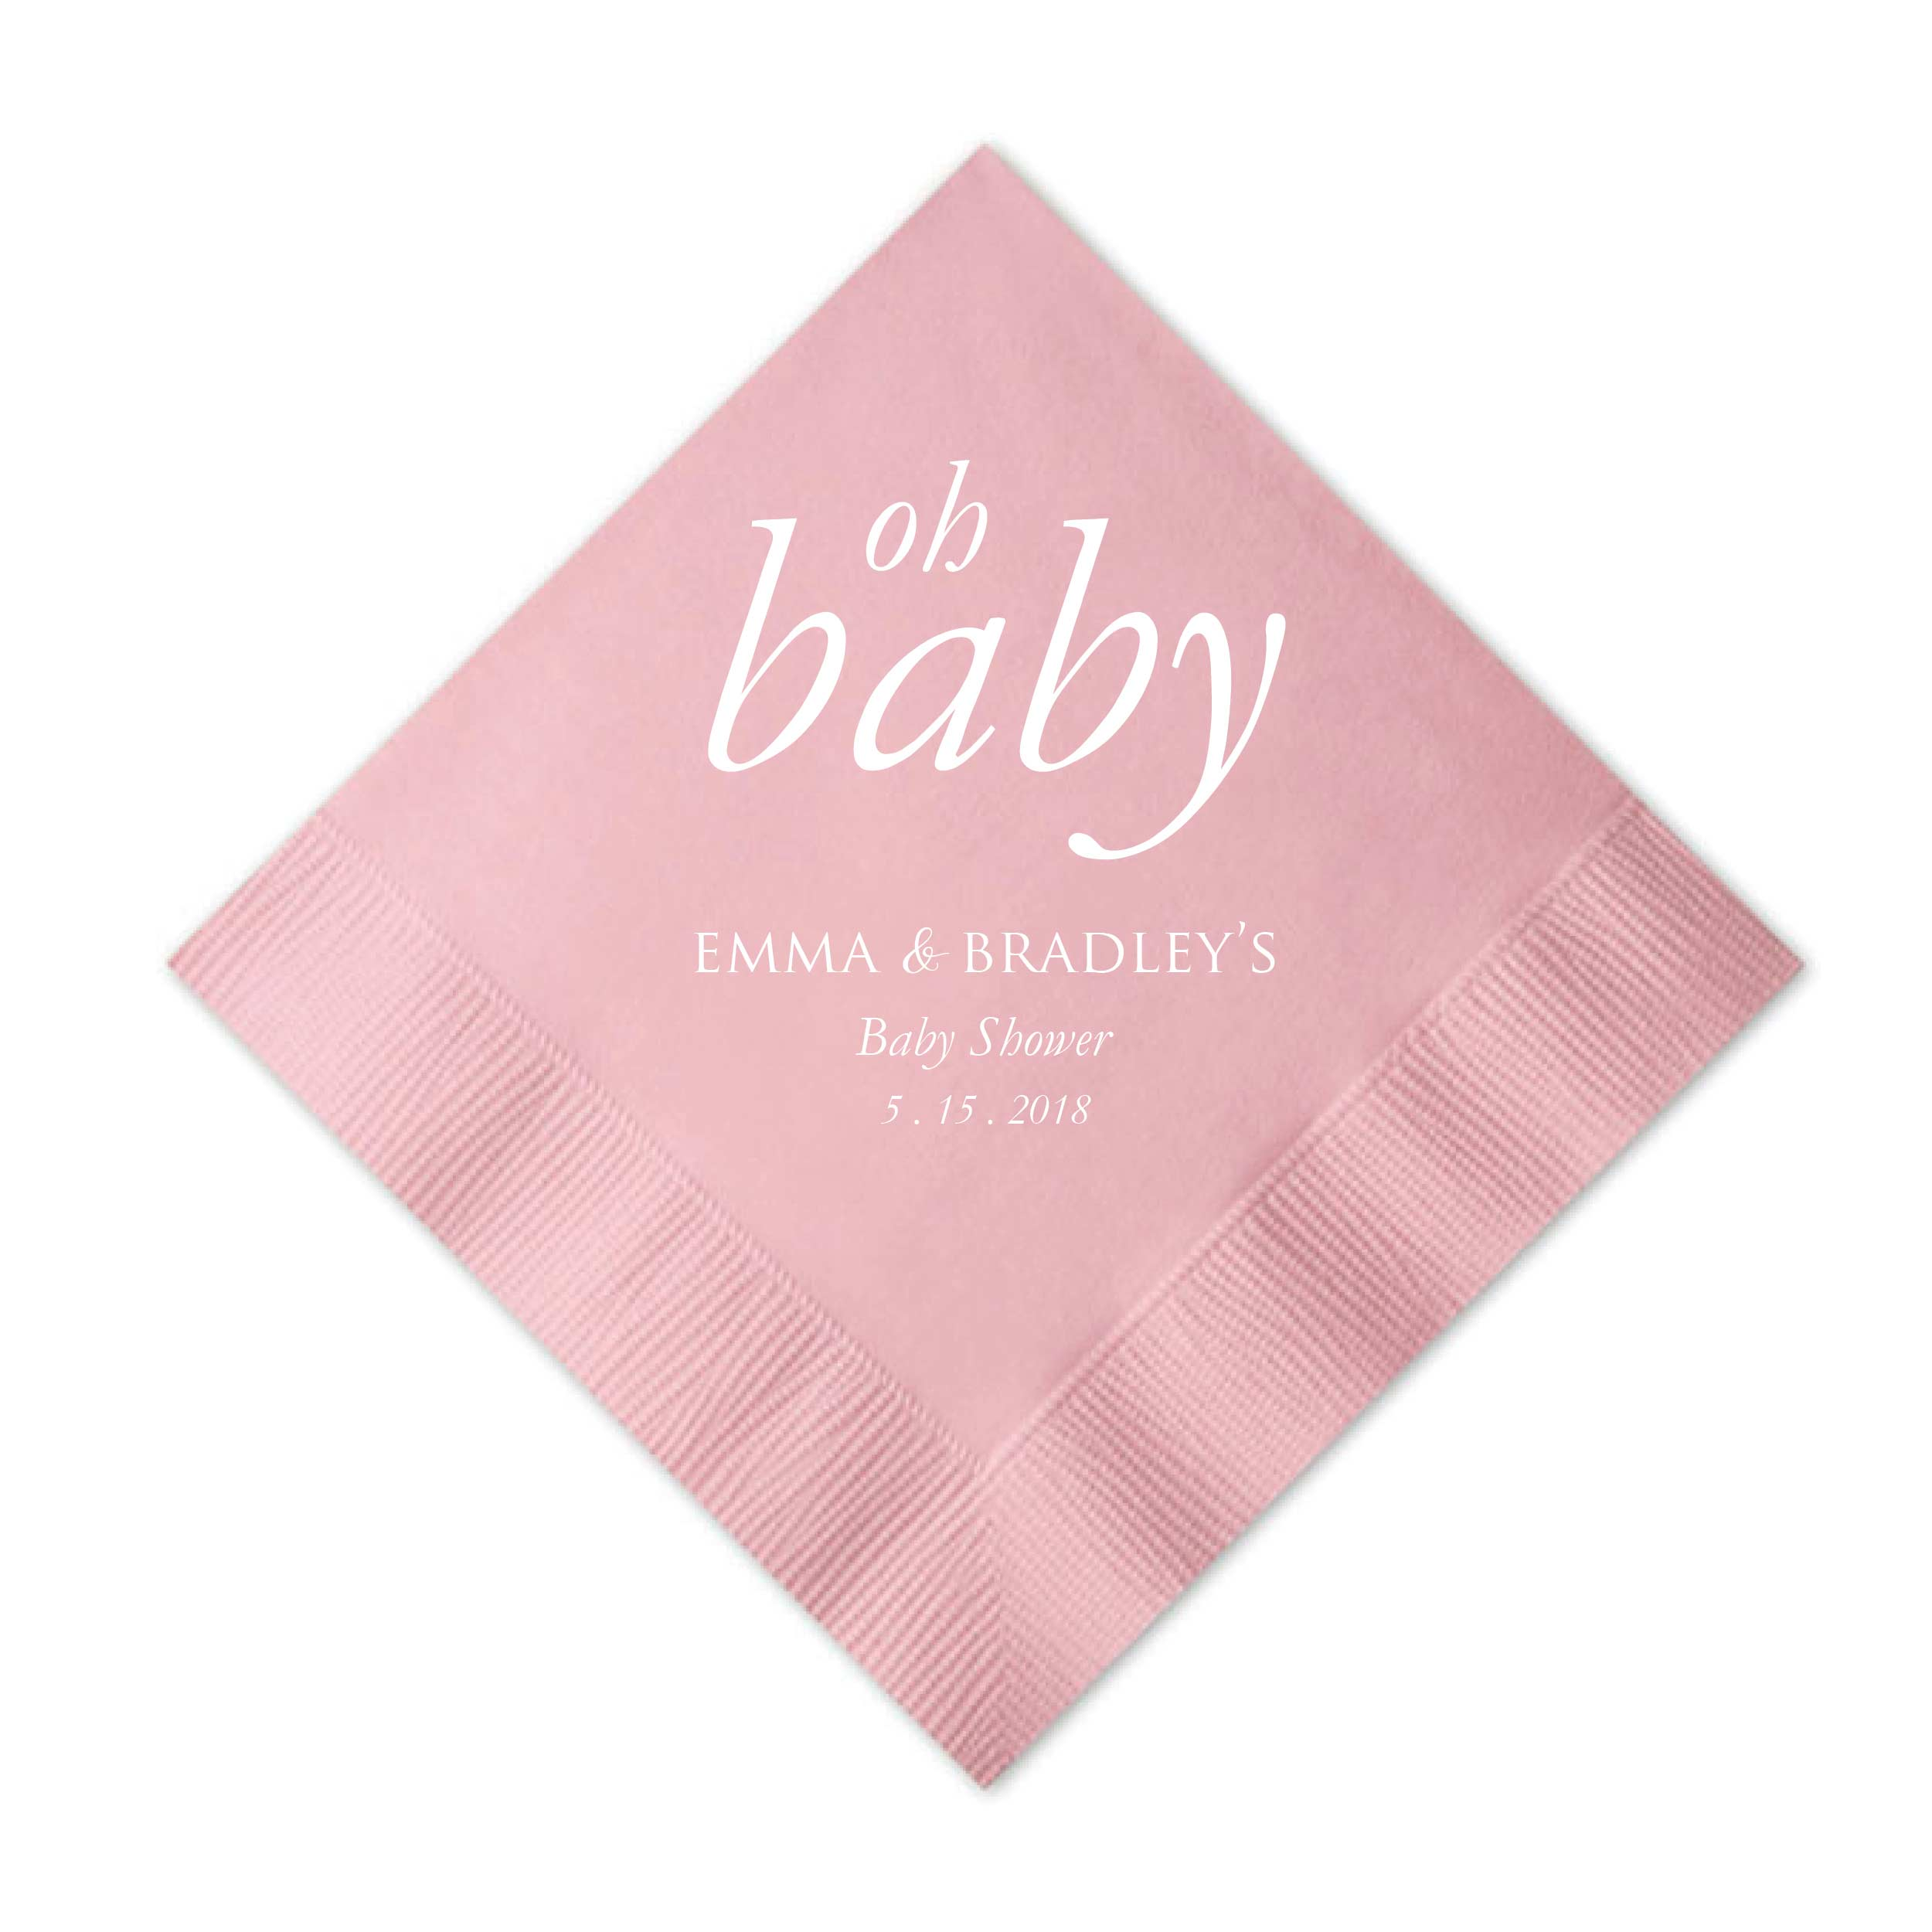 Superb Oh Baby Napkins   Set Of 50 Personalized Baby Shower Napkin   Nora  Collection   Tea